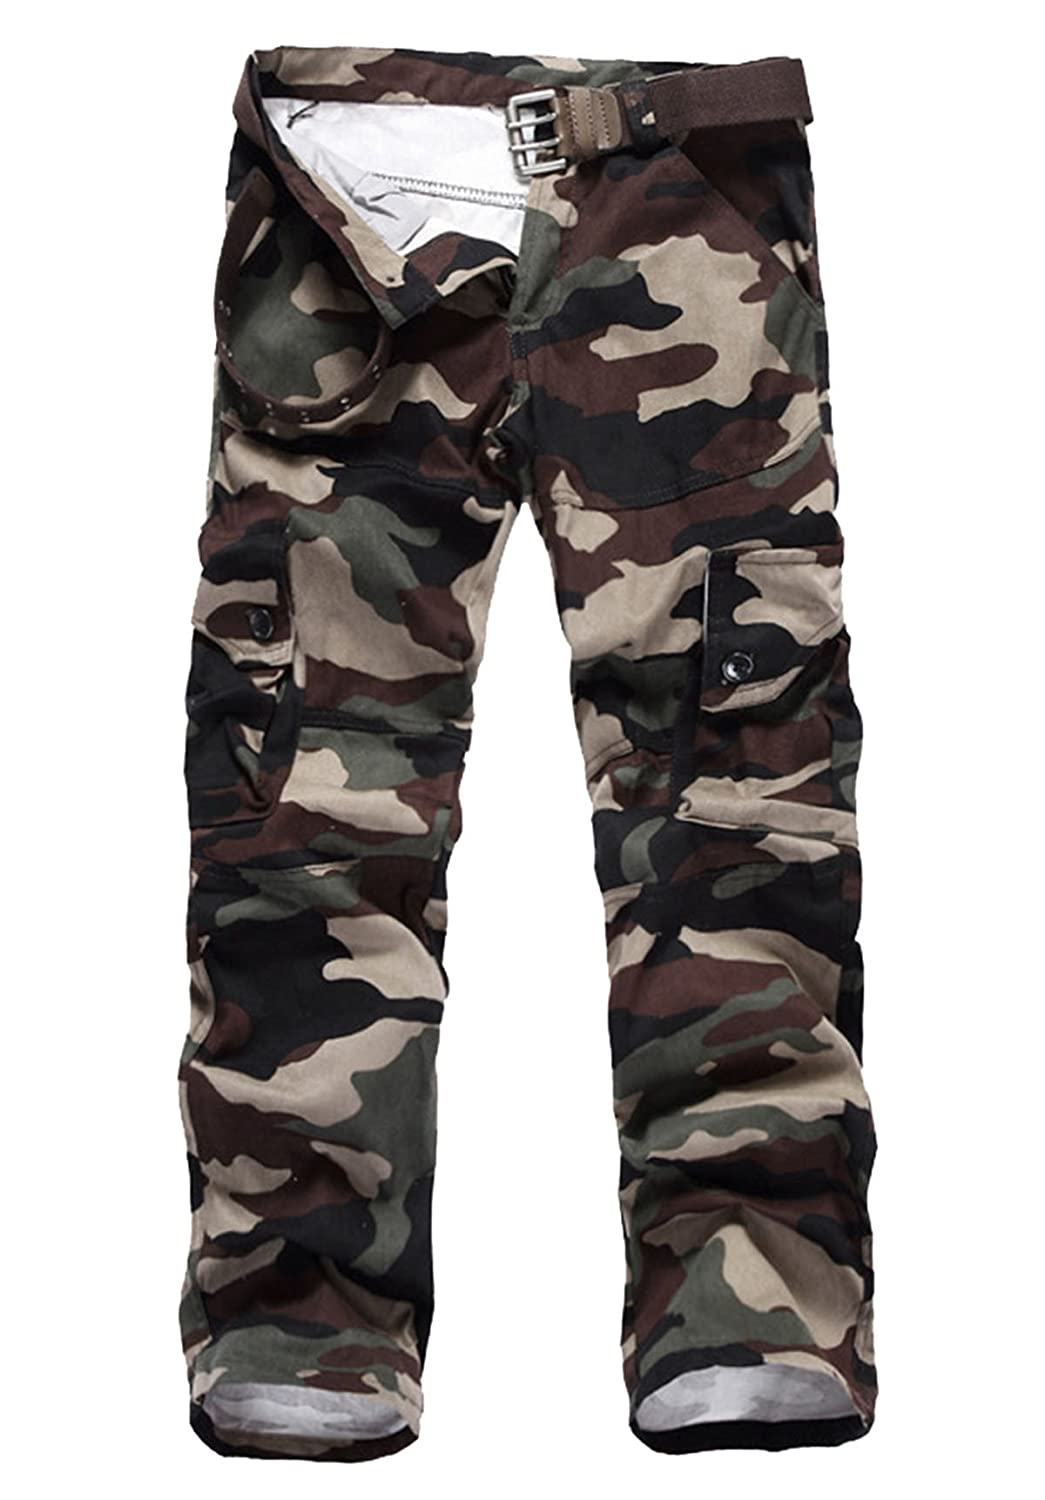 Mens Cotton Outdoor Woodland Camouflage Military Cargo Pants Combat Work Pants Aubig